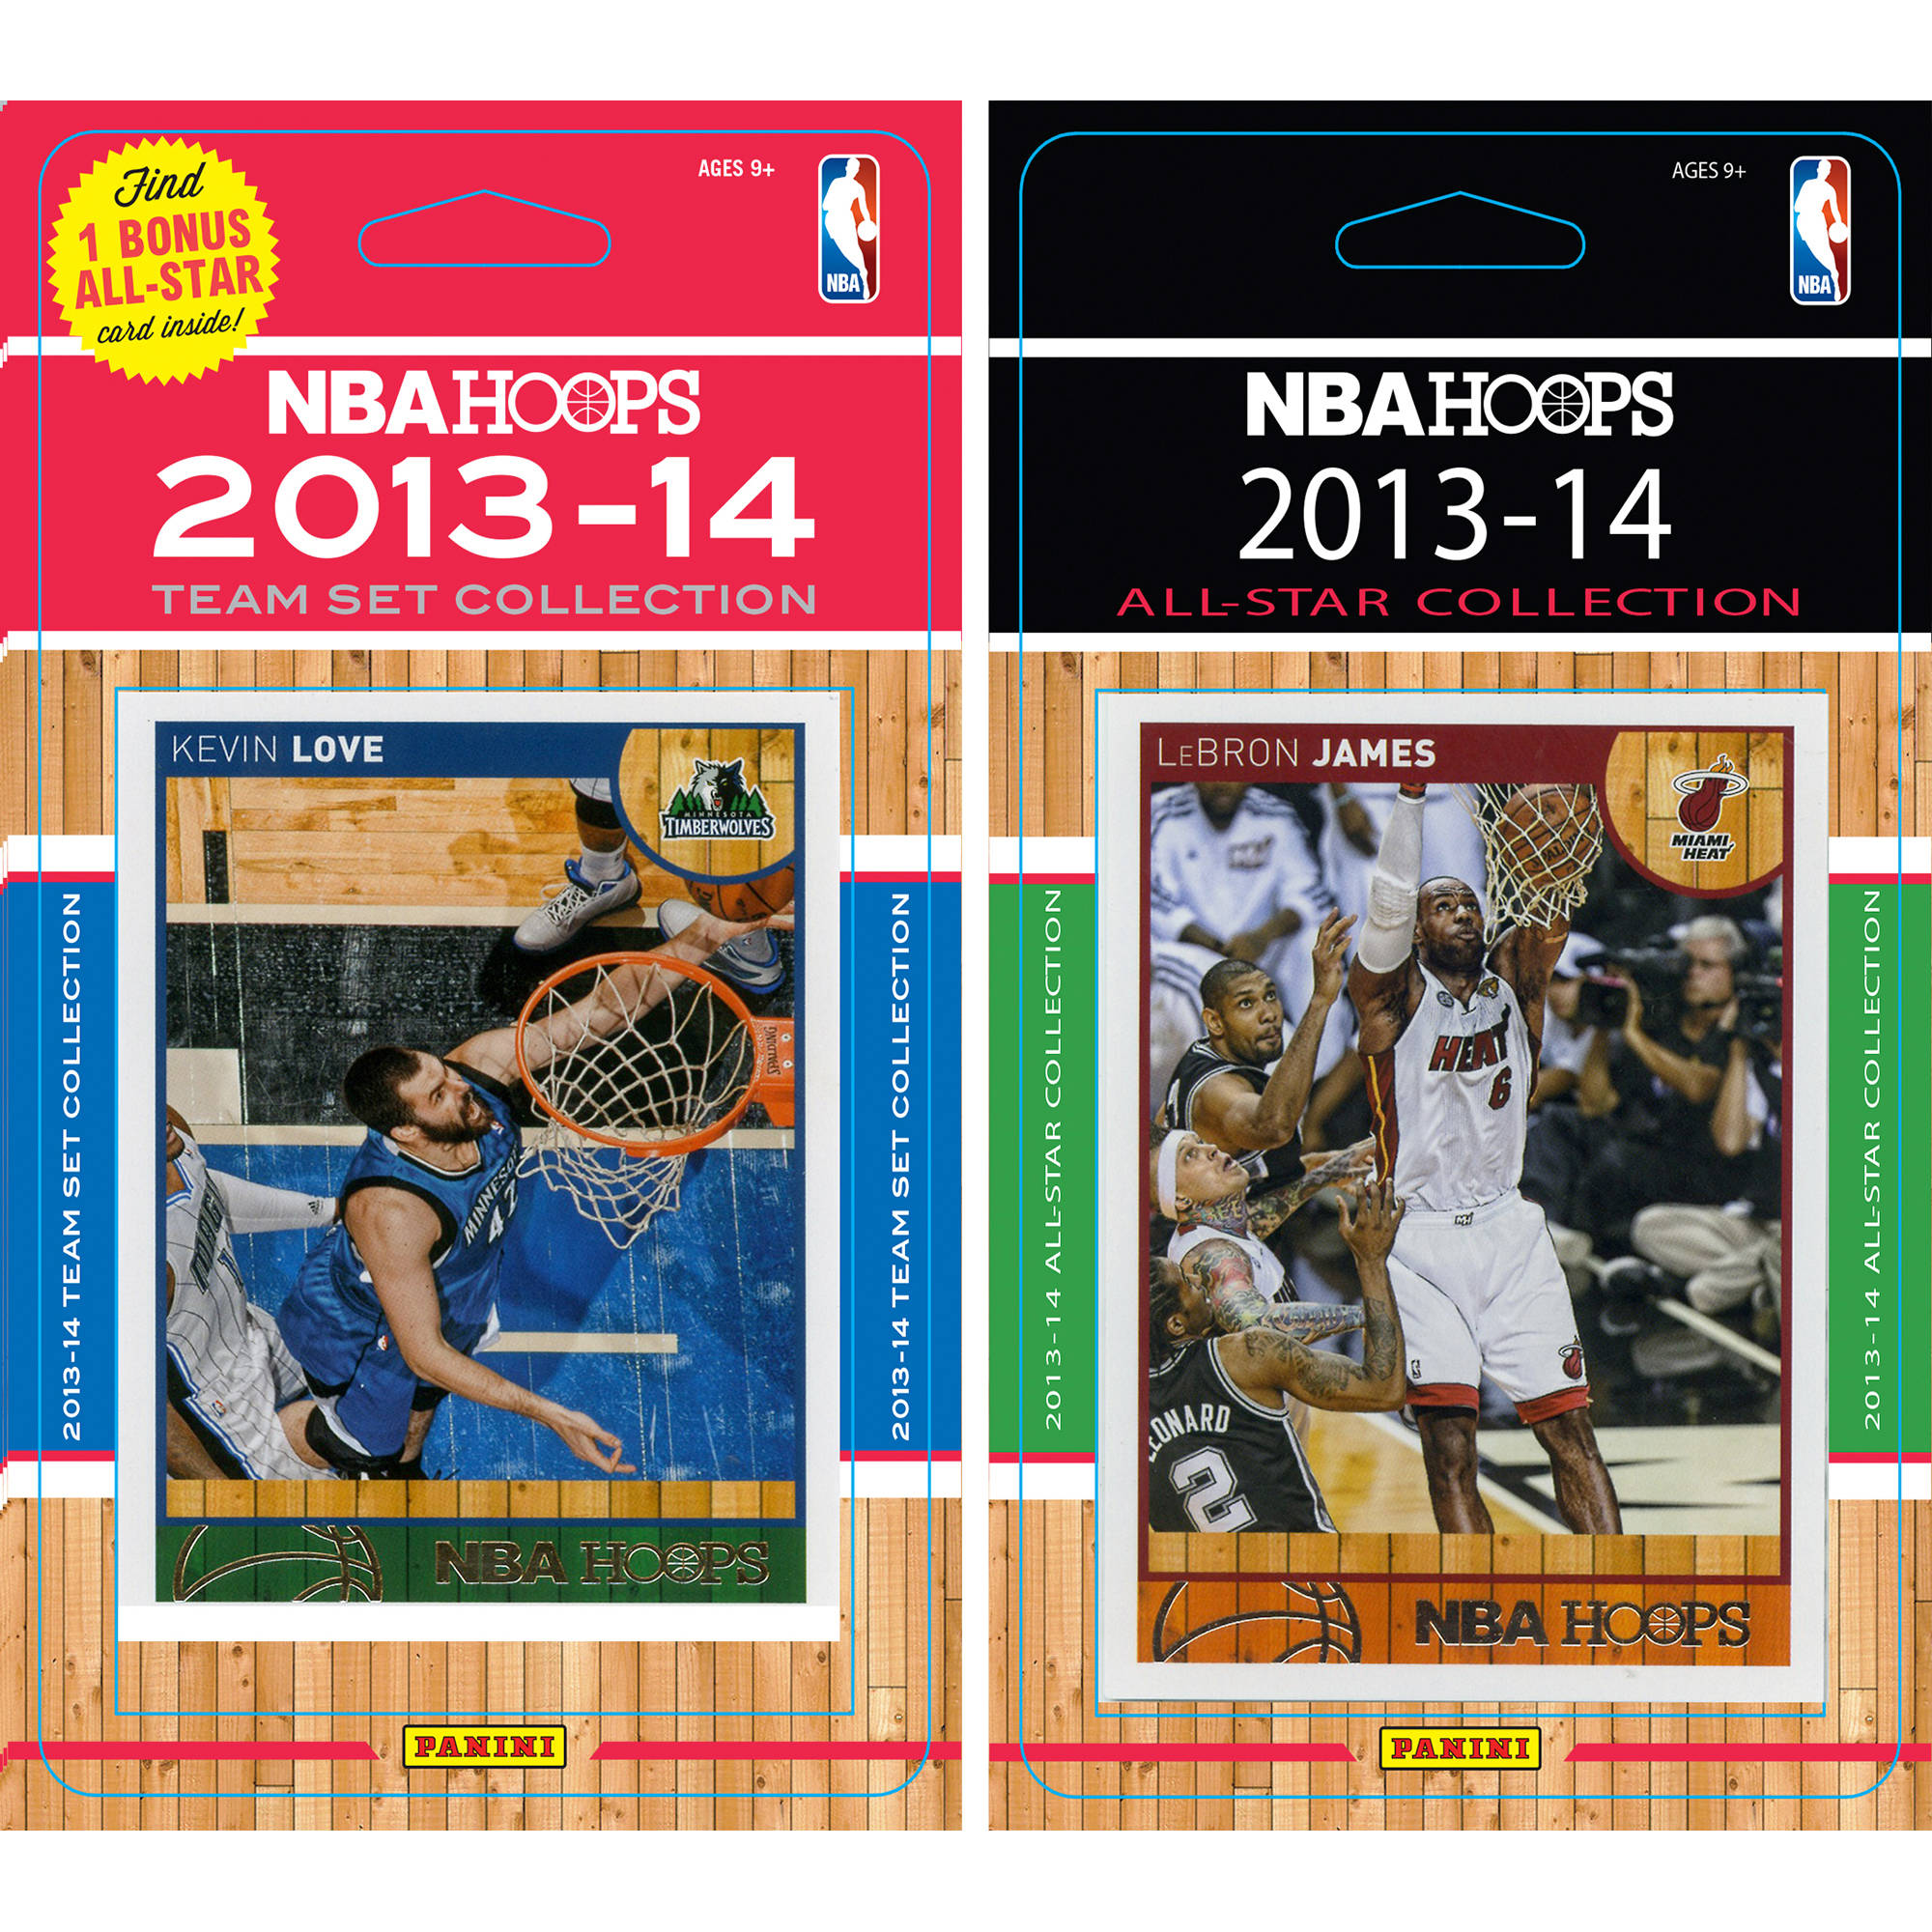 C&I Collectables NBA Minnesota Timberwolves Licensed 2013-14 Hoops Team Set Plus 2013-24 Hoops All-Star Set